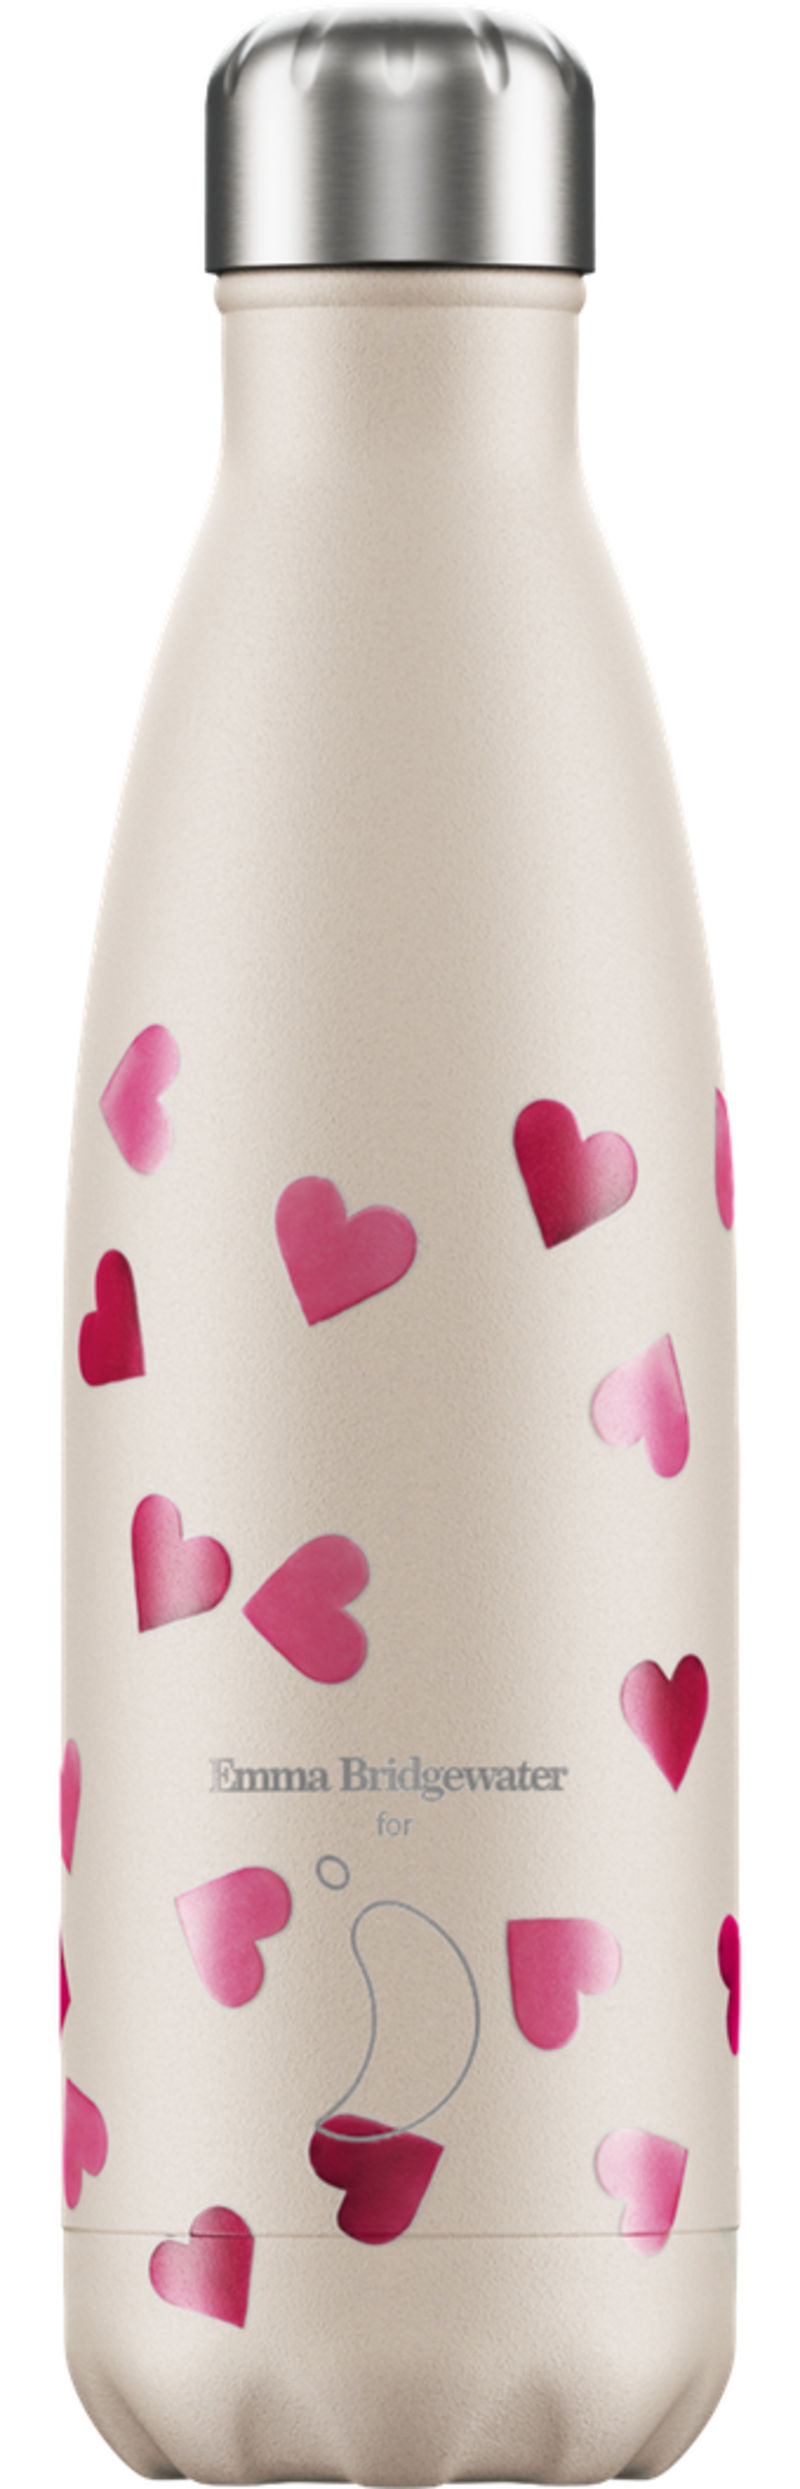 BOTELLA INOX CORAZONES EMMA BRIDGEATER 500ML